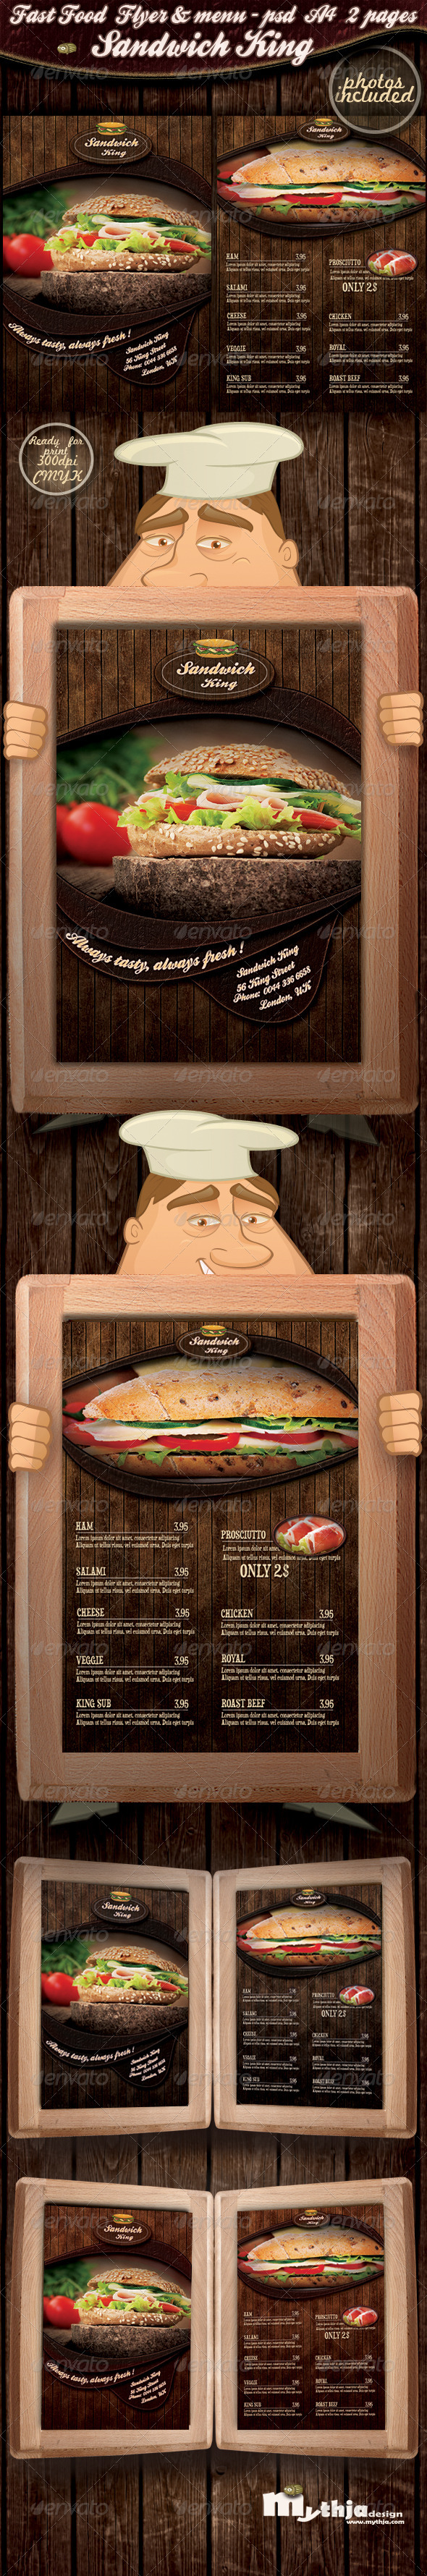 Fast food flyer &amp; menu - Sandwich king - Print Templates 